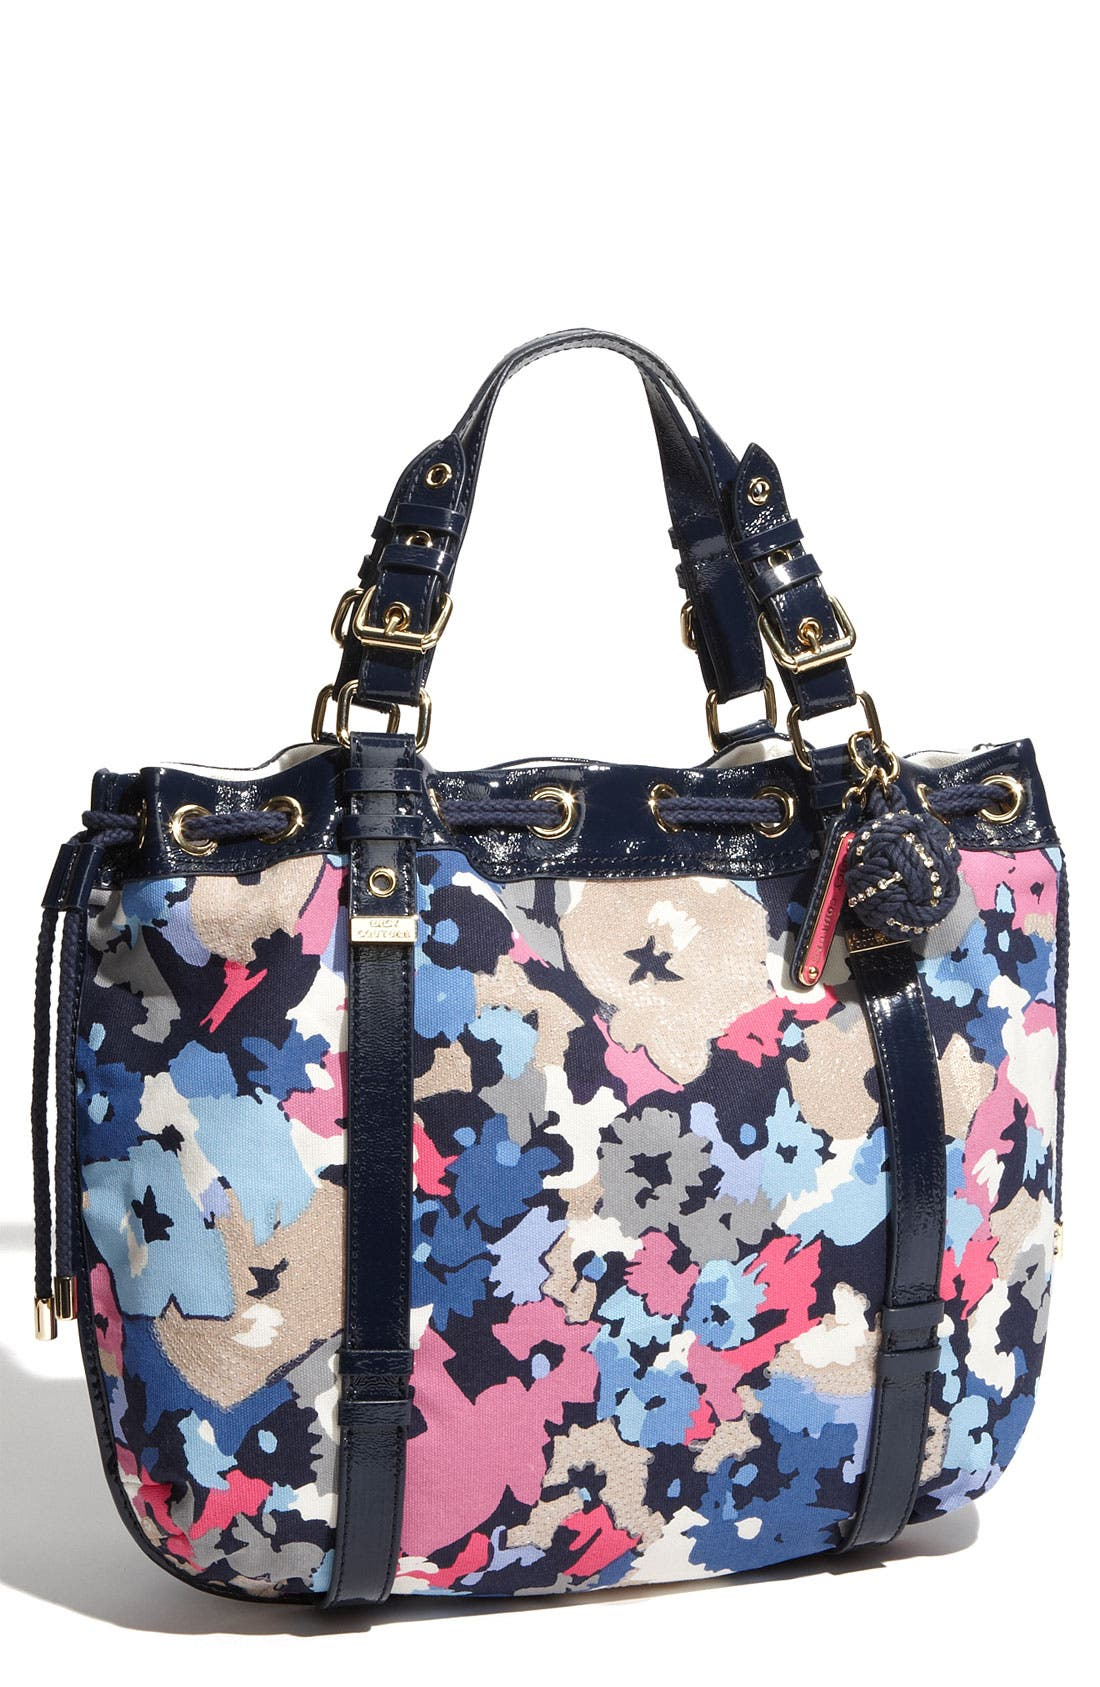 Alternate Image 1 Selected - Juicy Couture 'Beverly' Floral Print Canvas Tote